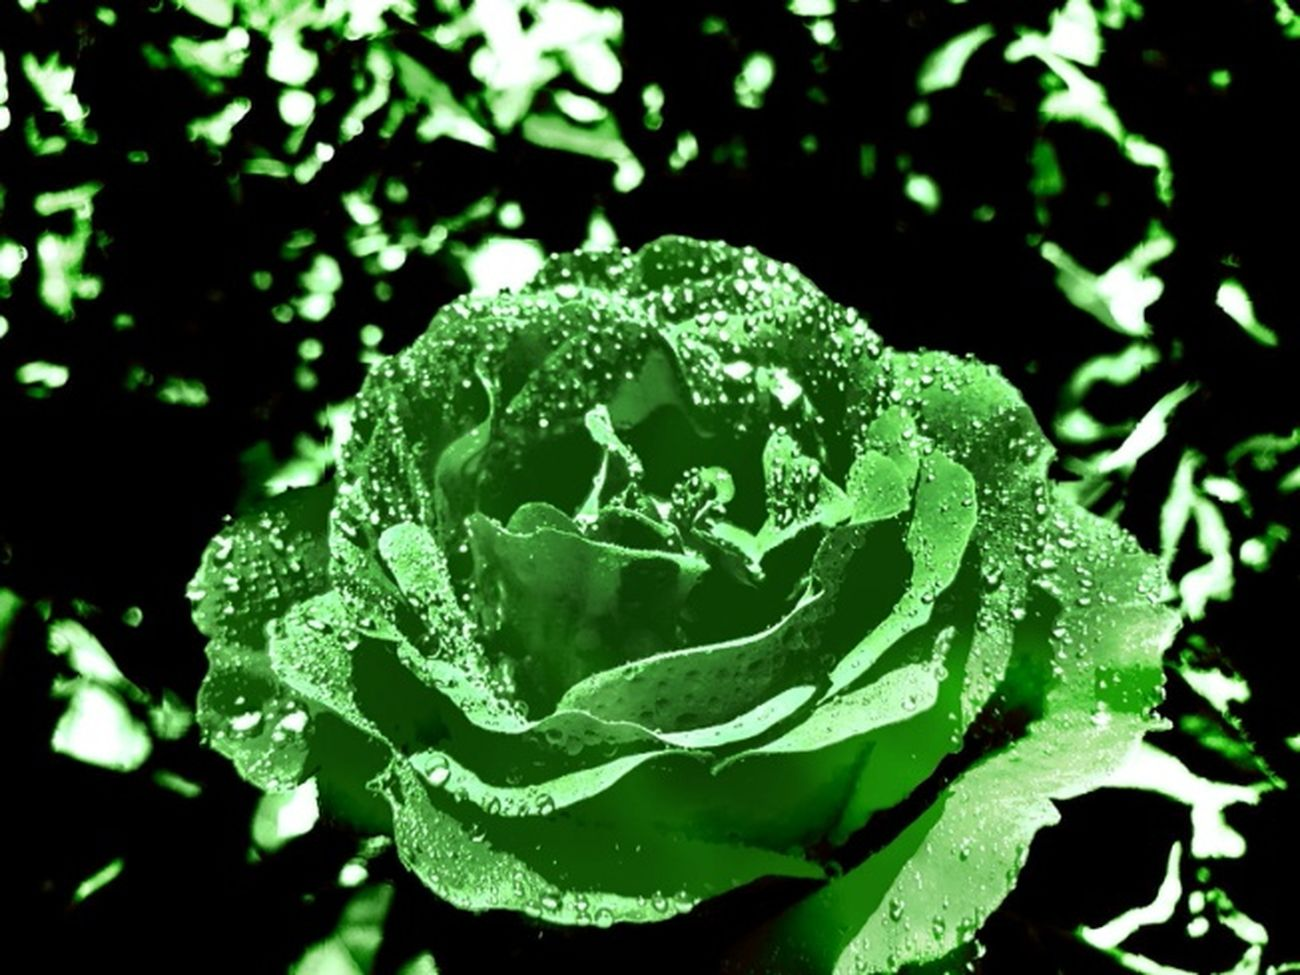 Green rose Roses Rose🌹 Rose♥ Nature_collection For My Friends That Connect Naturelovers Flowers,Plants & Garden Flowers HDR Hdr_Collection